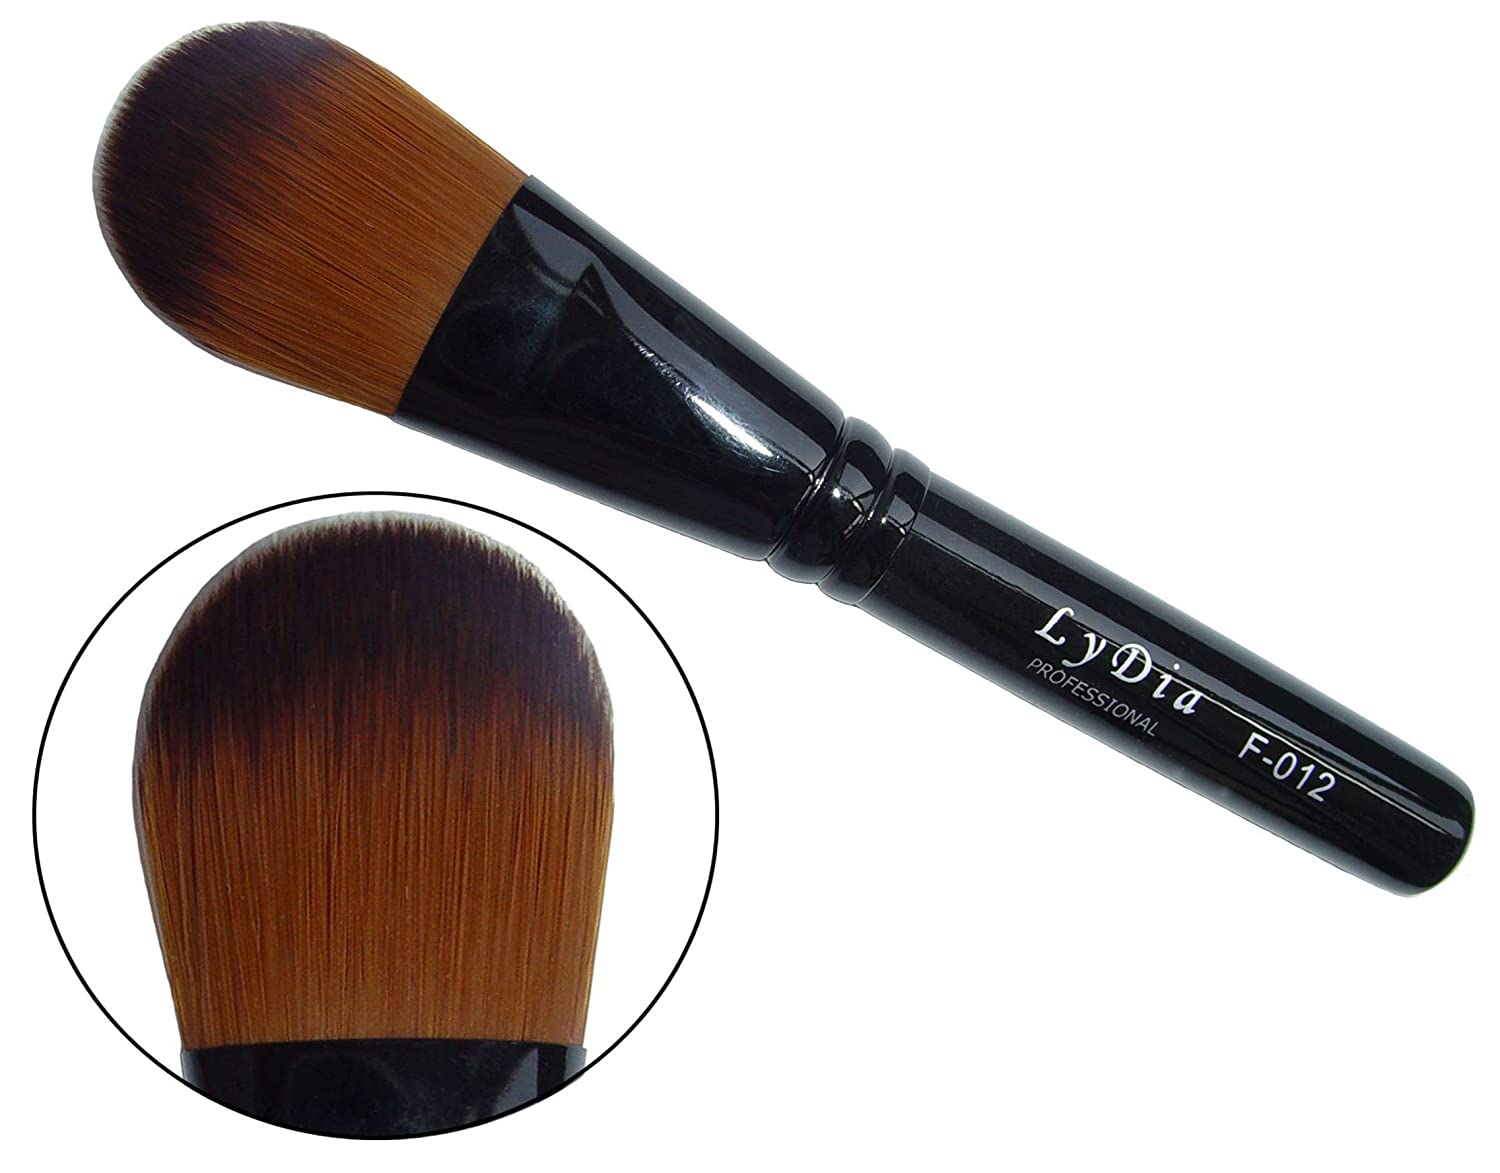 LyDia professional black foundation/concealer/face mask cosmetic makeup brush F-012 (Length: 13.50cm / 5.4 inches) LyDia Beauty Foundation F-012